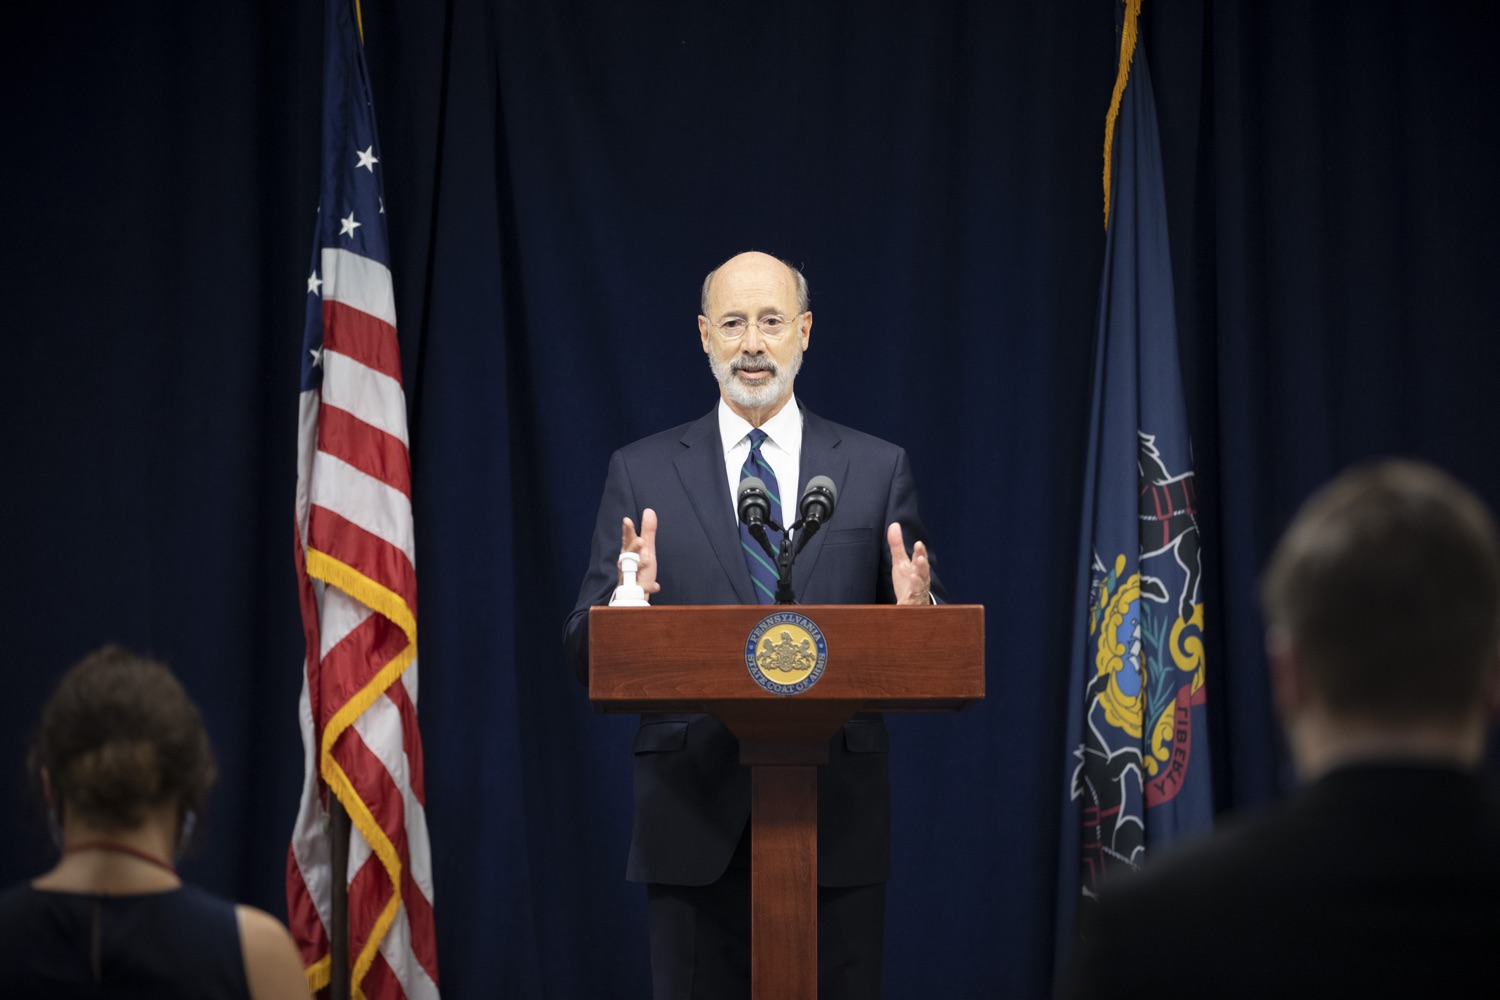 """<a href=""""https://filesource.wostreaming.net/commonwealthofpa/photo/18239_gov_recMarijuana_dz_013.jpg"""" target=""""_blank"""">⇣Download Photo<br></a>Pennsylvania Governor Tom Wolf speaking with the press. Governor Tom Wolf and Lt. Governor John Fetterman today called on the legislature to take up the legalization of adult-use cannabis to help with the states economic recovery amid COVID-19. Legalization will also create more outlets for important restorative justice programs in the commonwealth.  Harrisburg, PA  Sept. 3, 2020"""